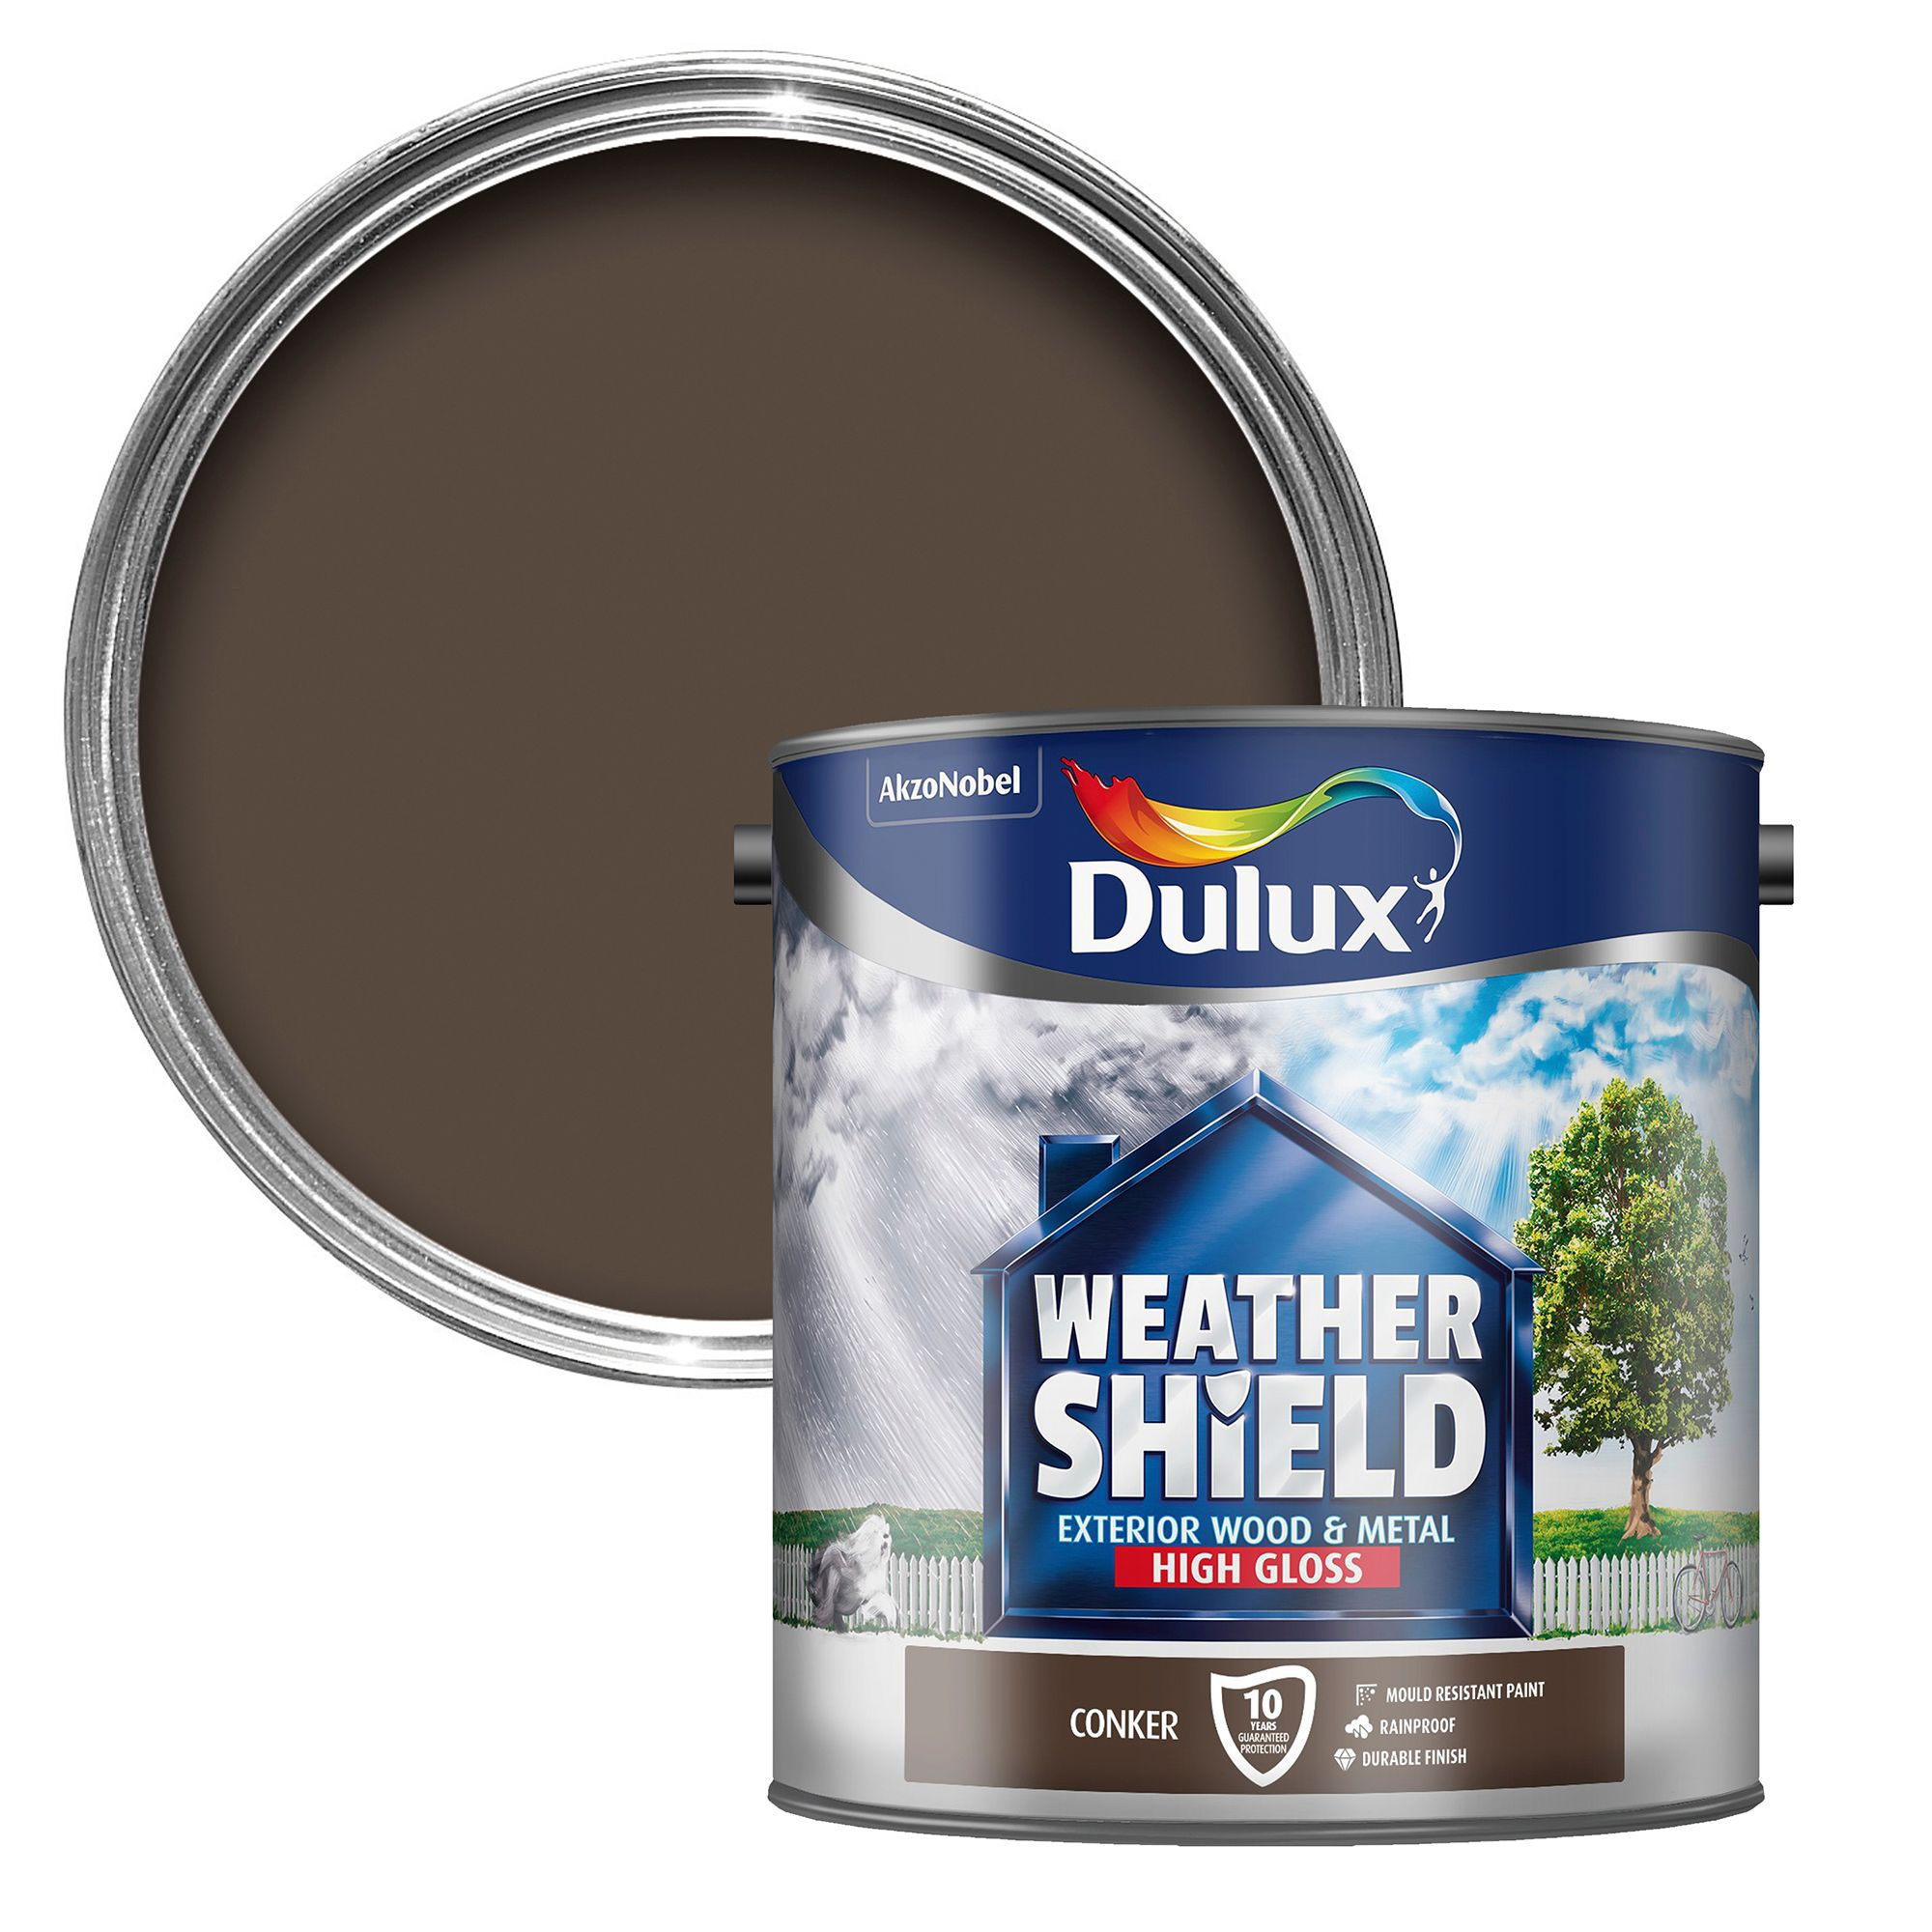 Sandtex Exterior Eggshell Paint Part - 31: Dulux Weathershield Exterior Conker Gloss Wood U0026 Metal Paint 2.5L